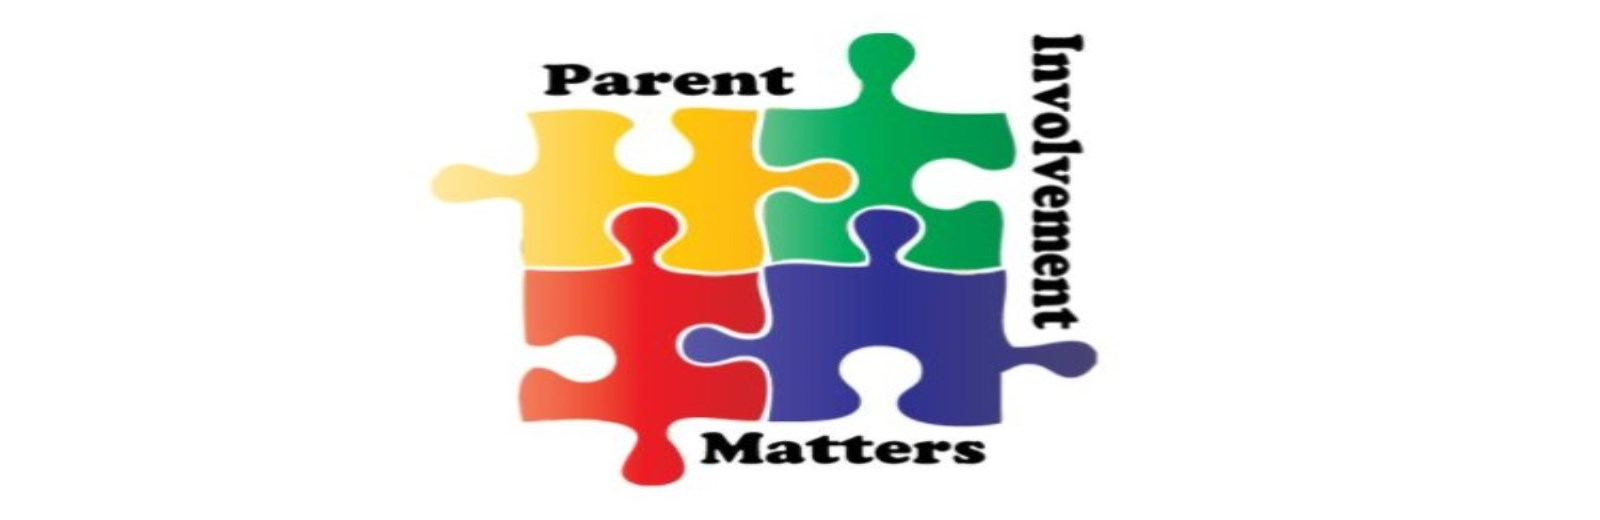 View our Parents page